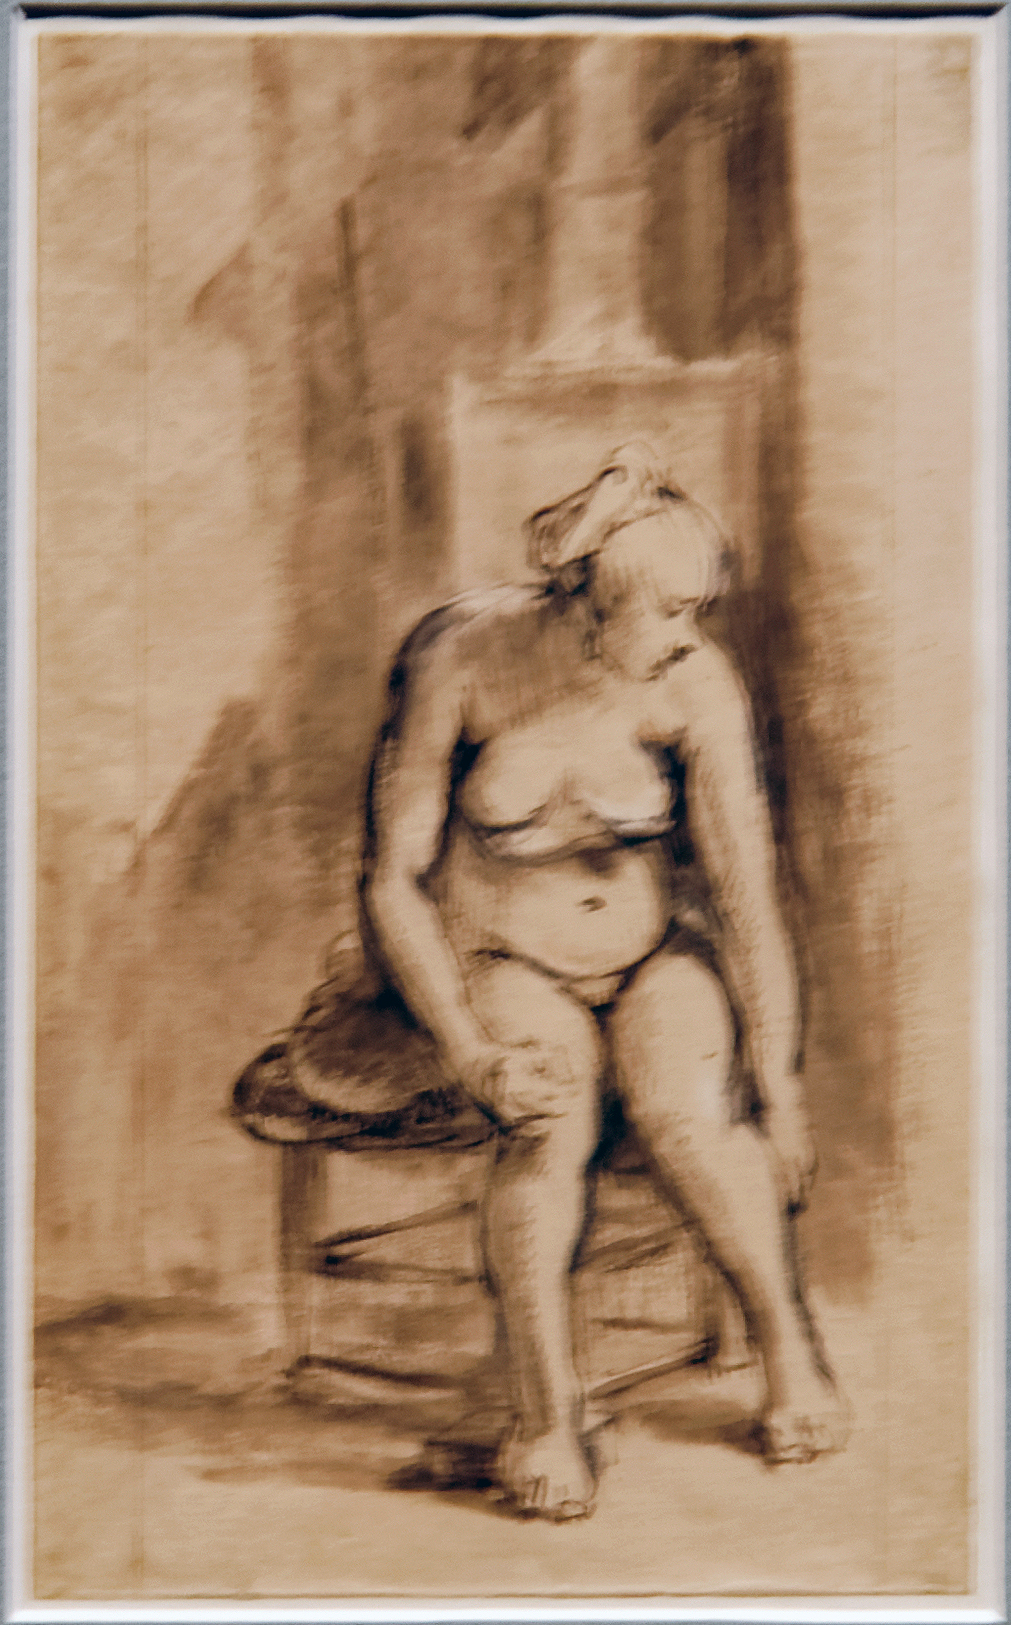 Nude photo exposition